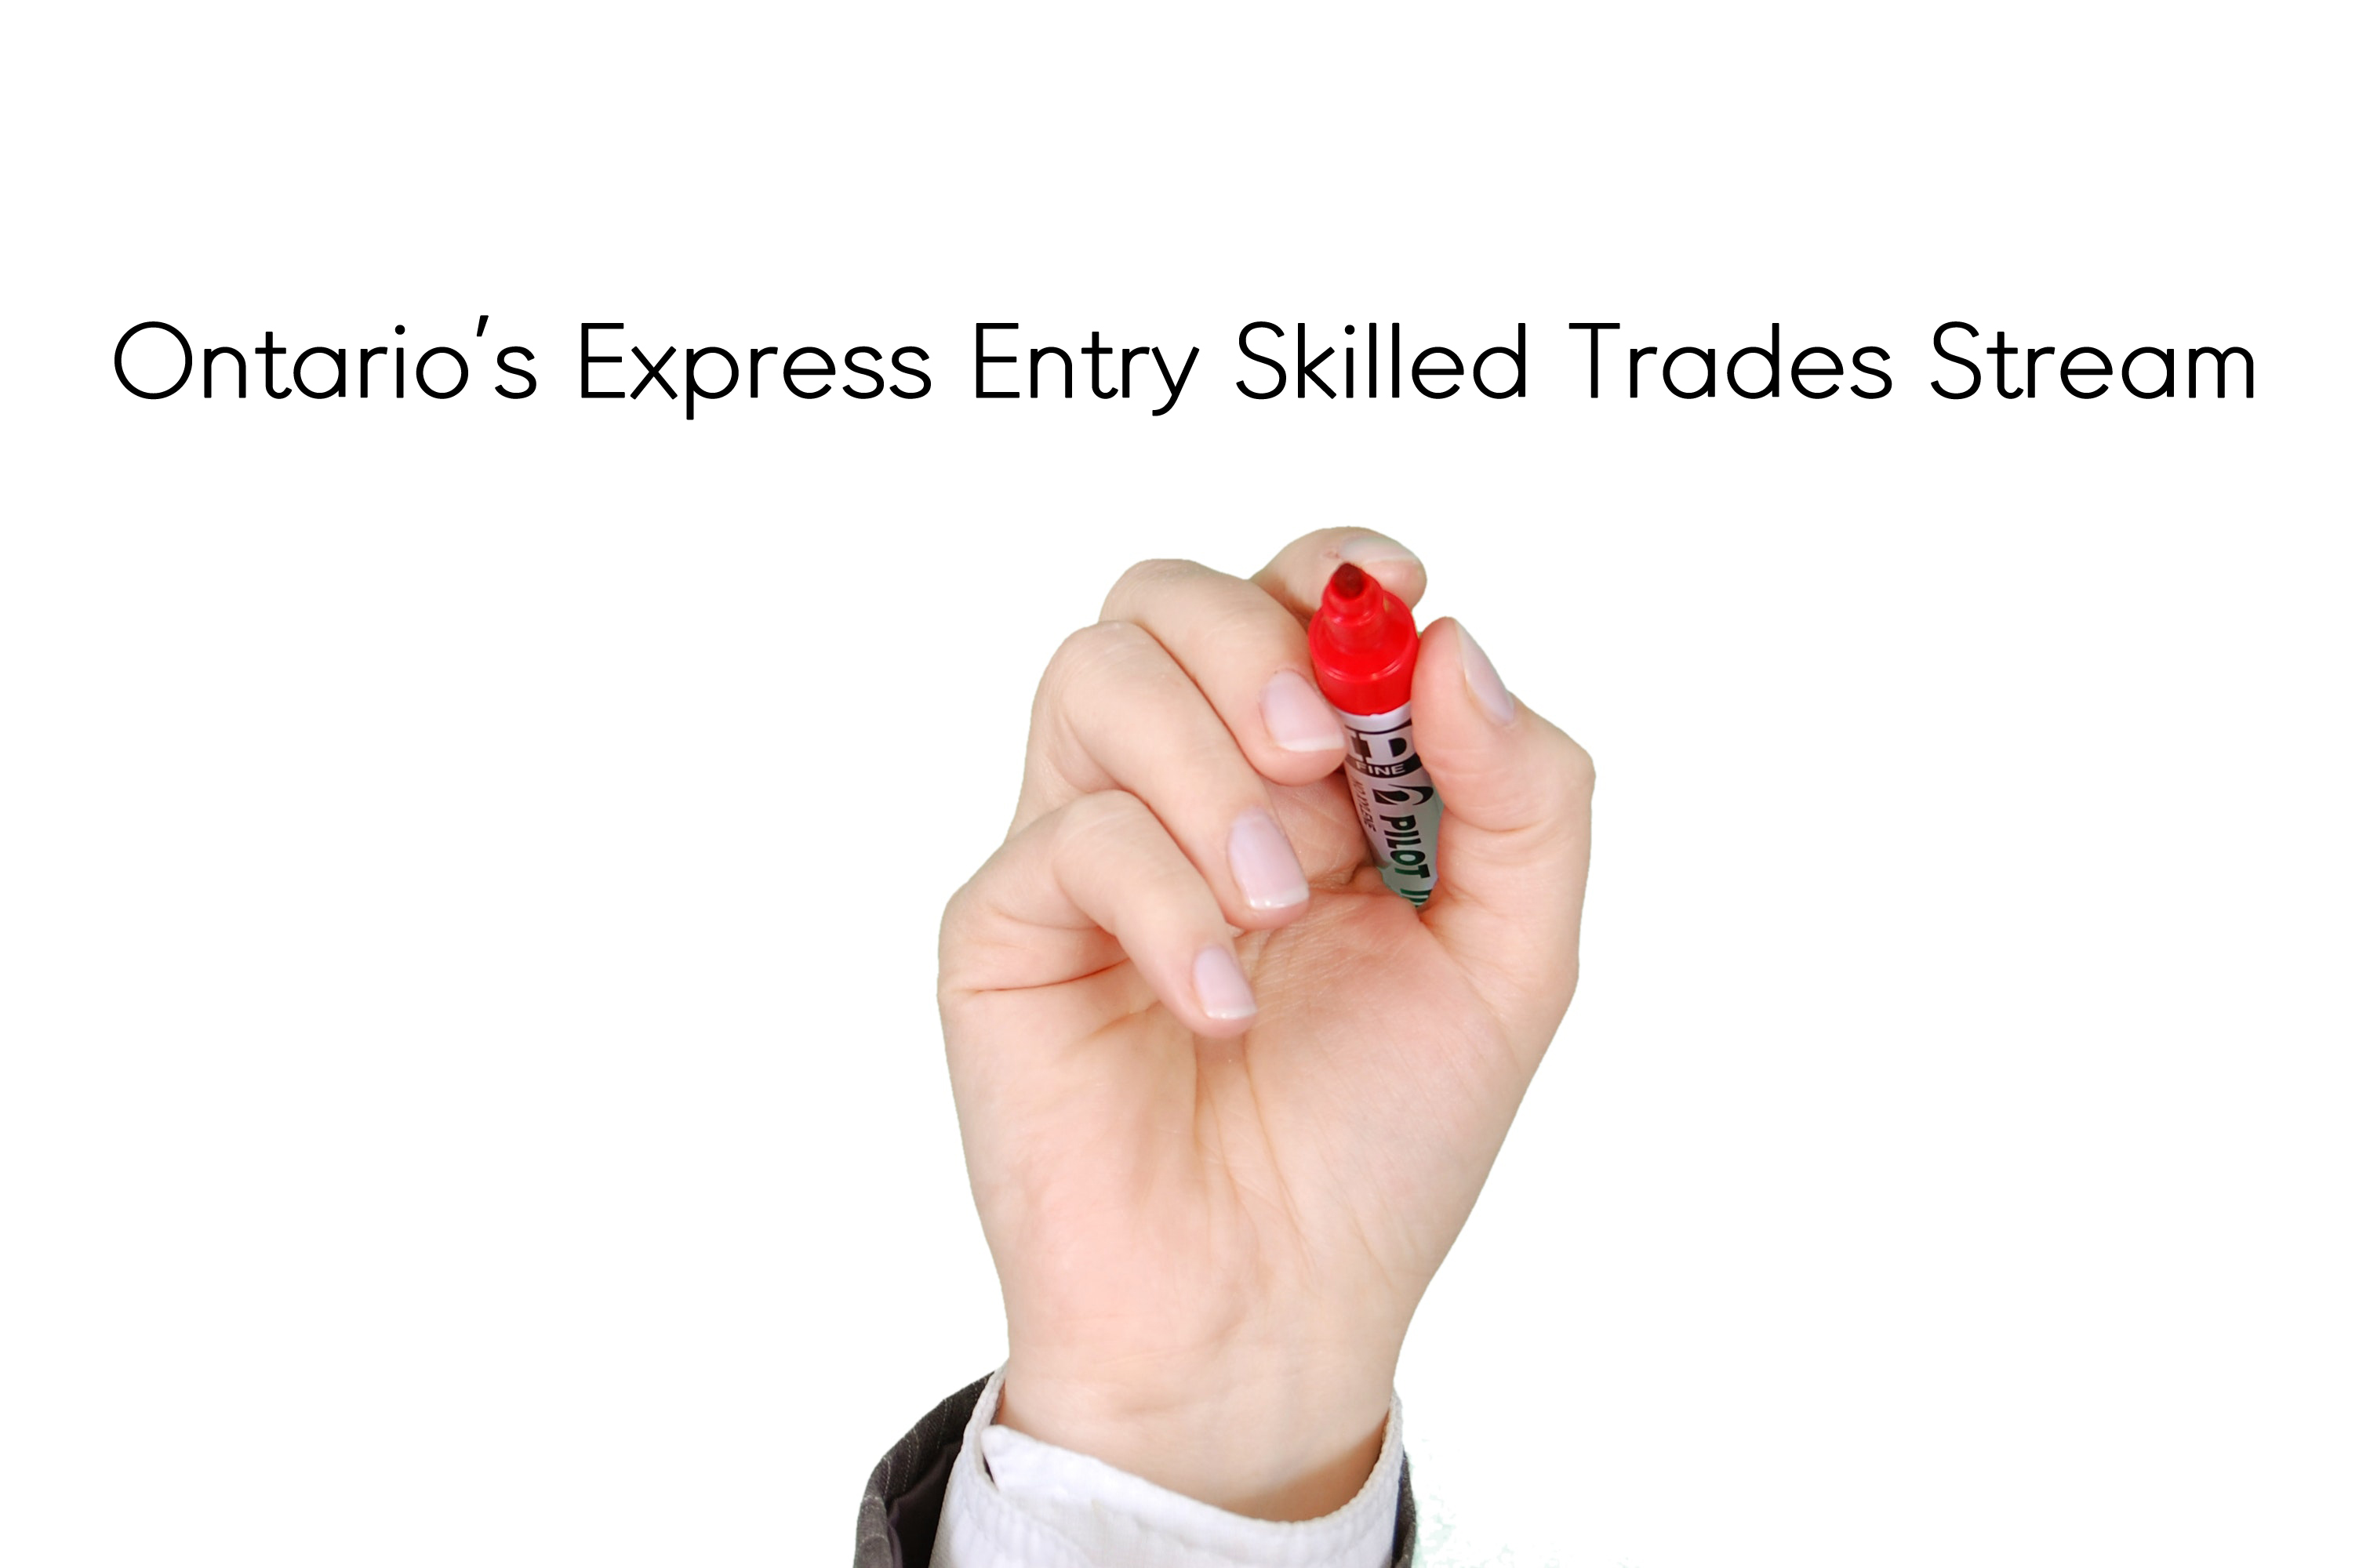 Ontario's Express Entry Skilled Trades Stream 자격조건 안내